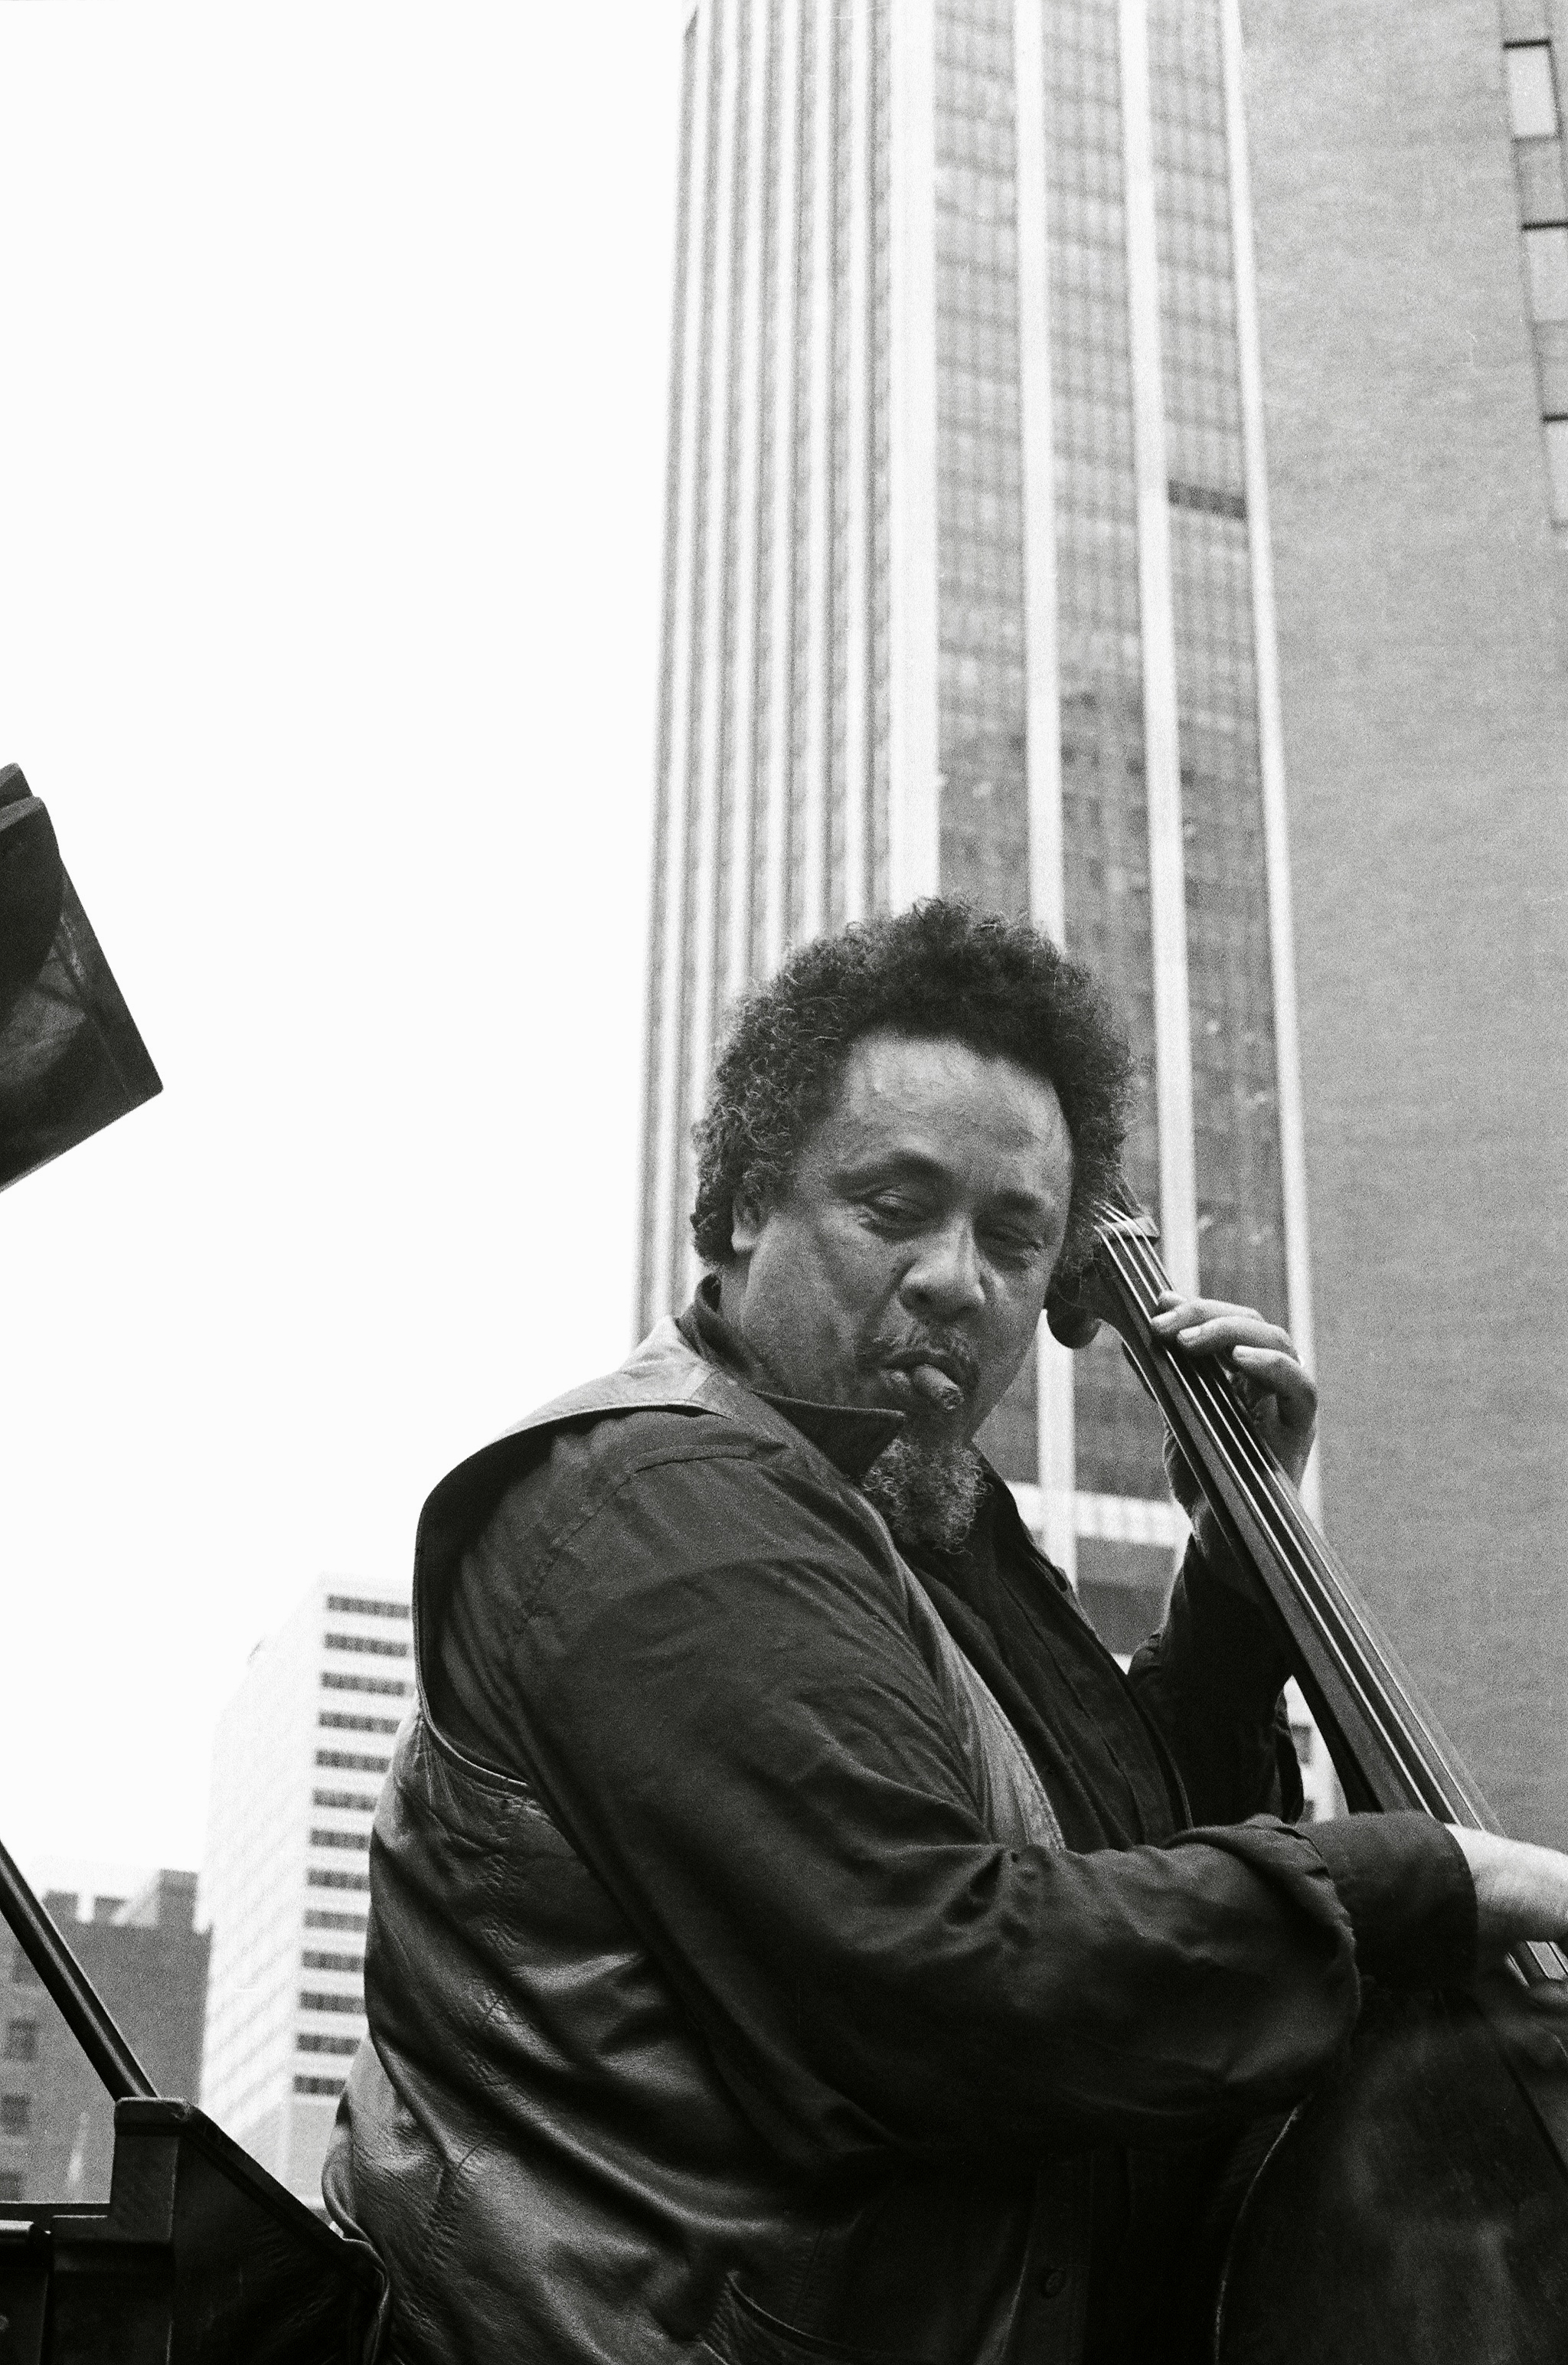 Charles Mingus, By Tom Marcello Webster, New York, USA (CHARLES MINGUS)